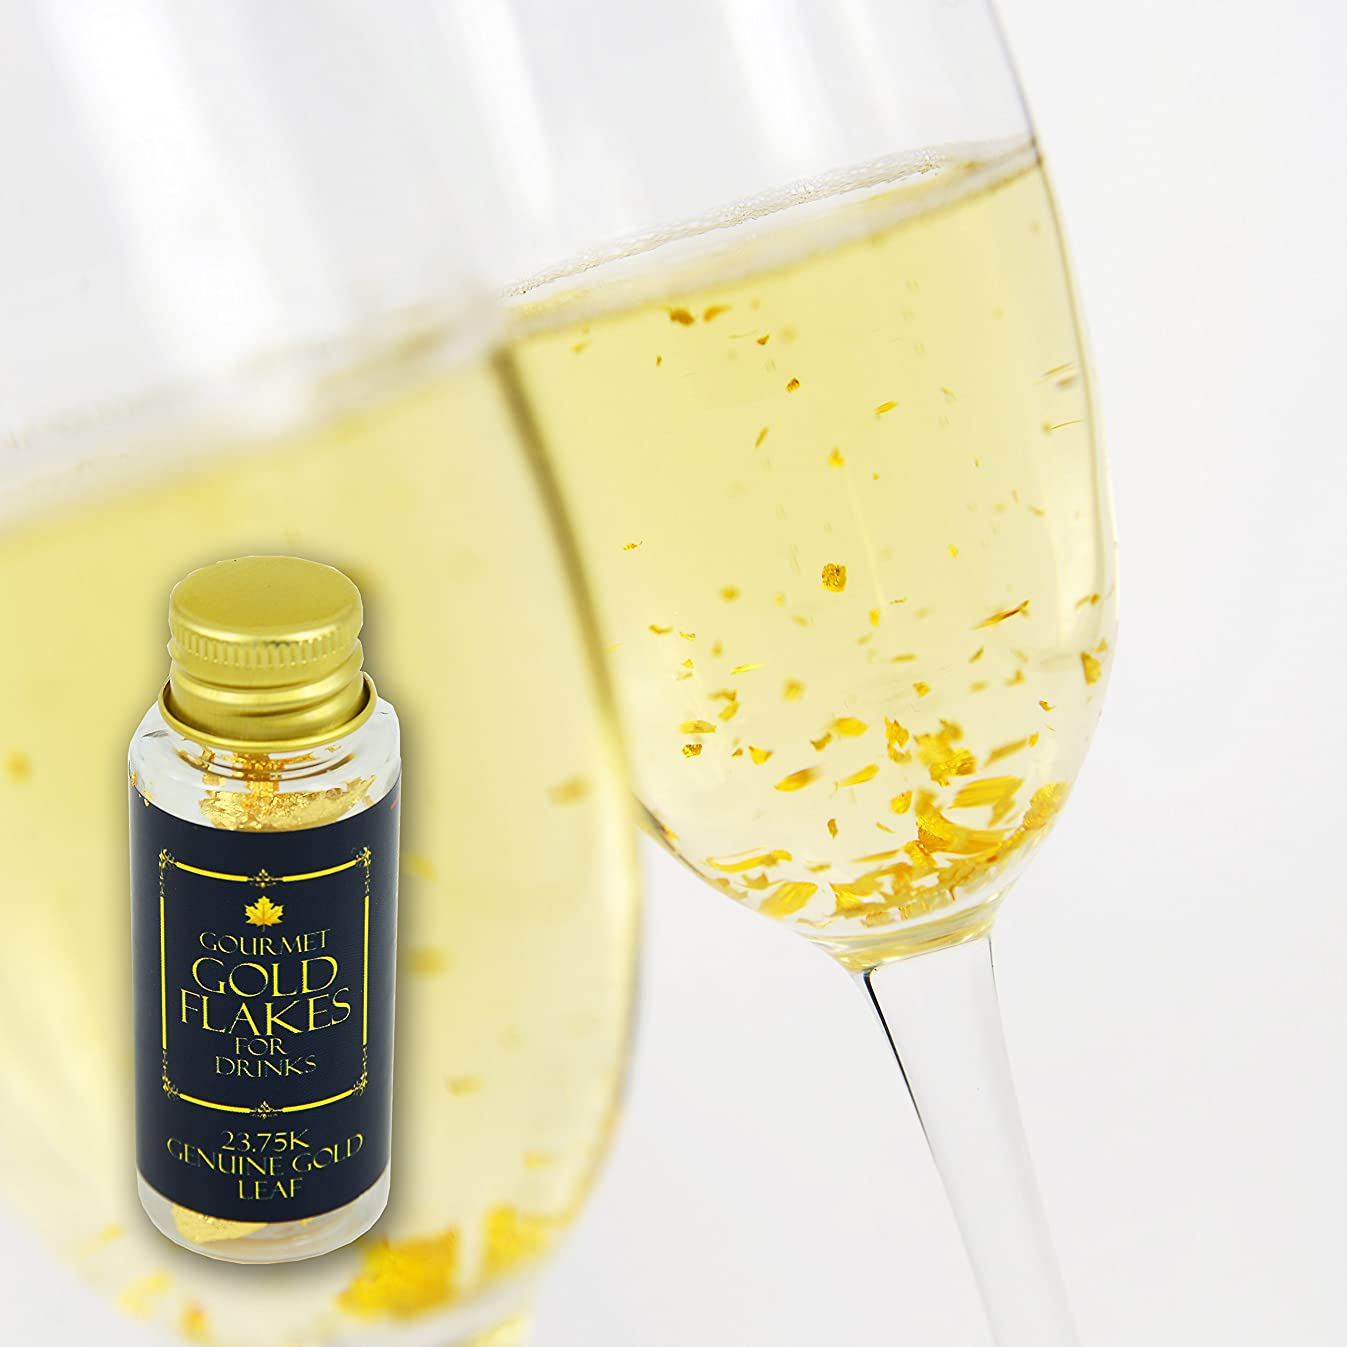 Edible Genuine Gold Leaf for Drinks - by Barnabas Blattgold - 2 Pack